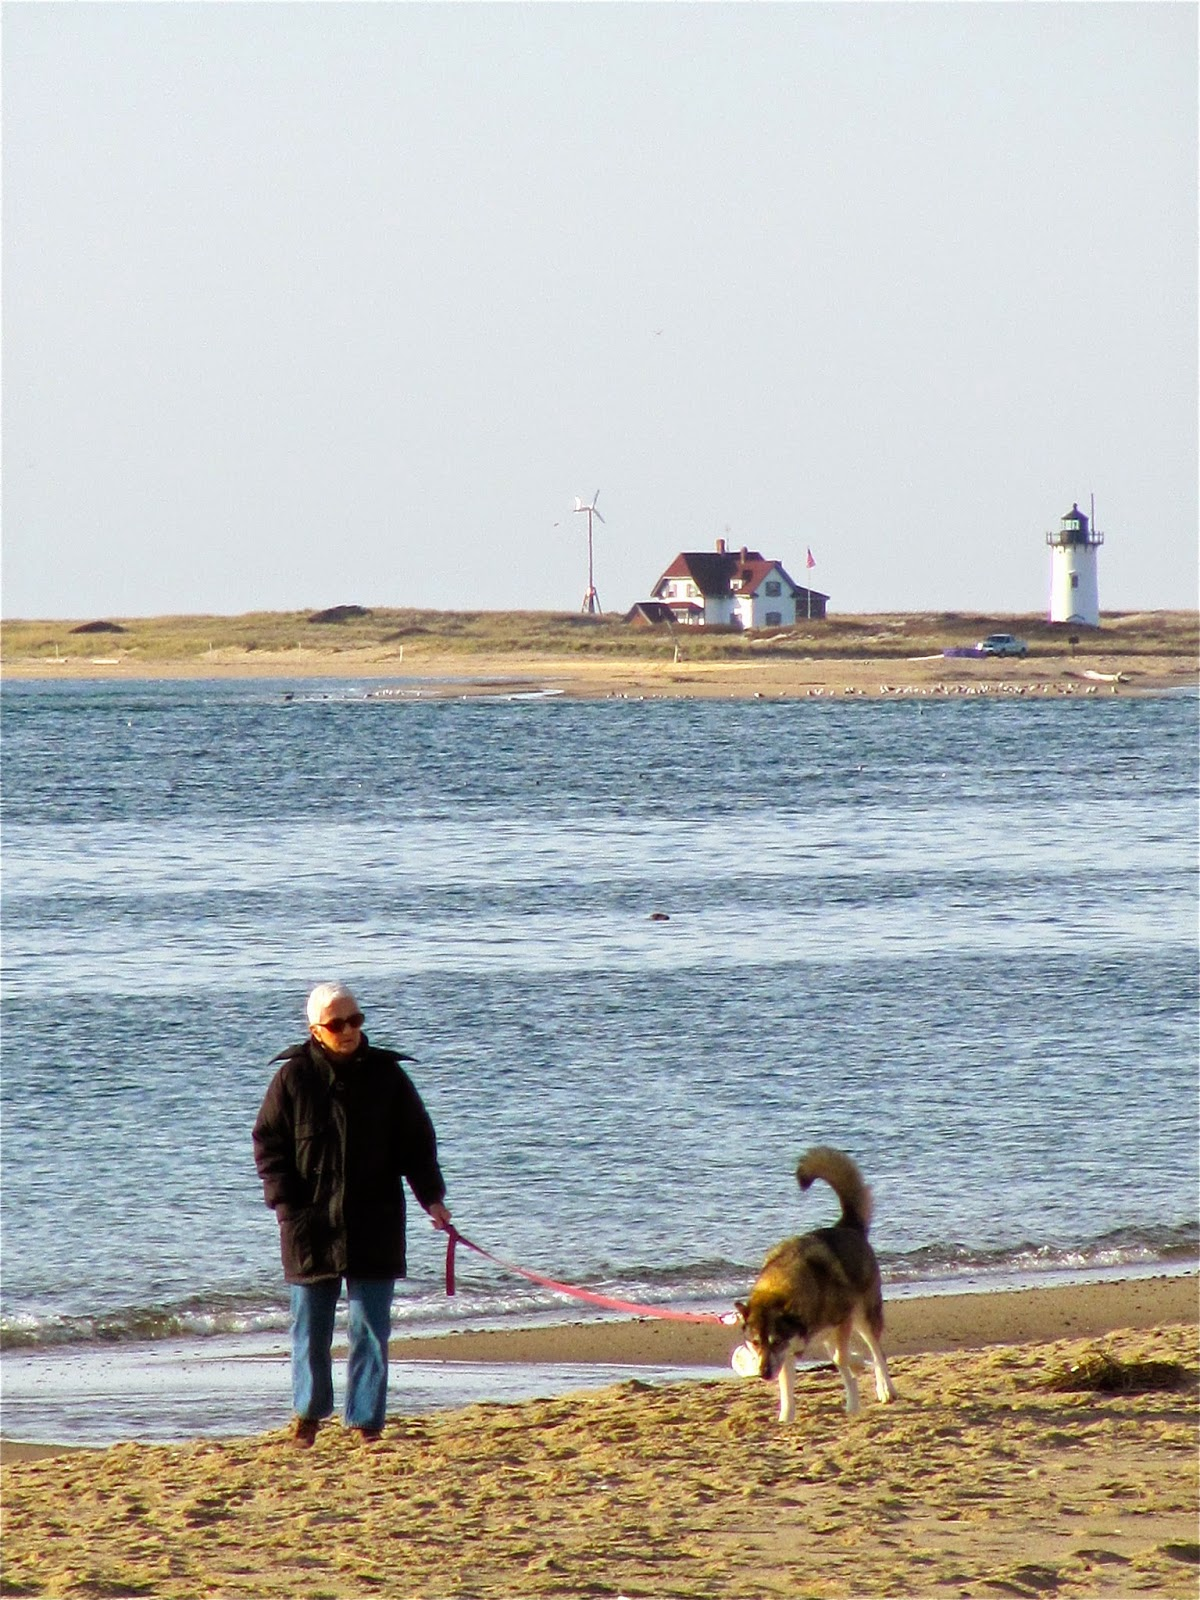 Theyearrounder S Guide To Provincetown December 2014